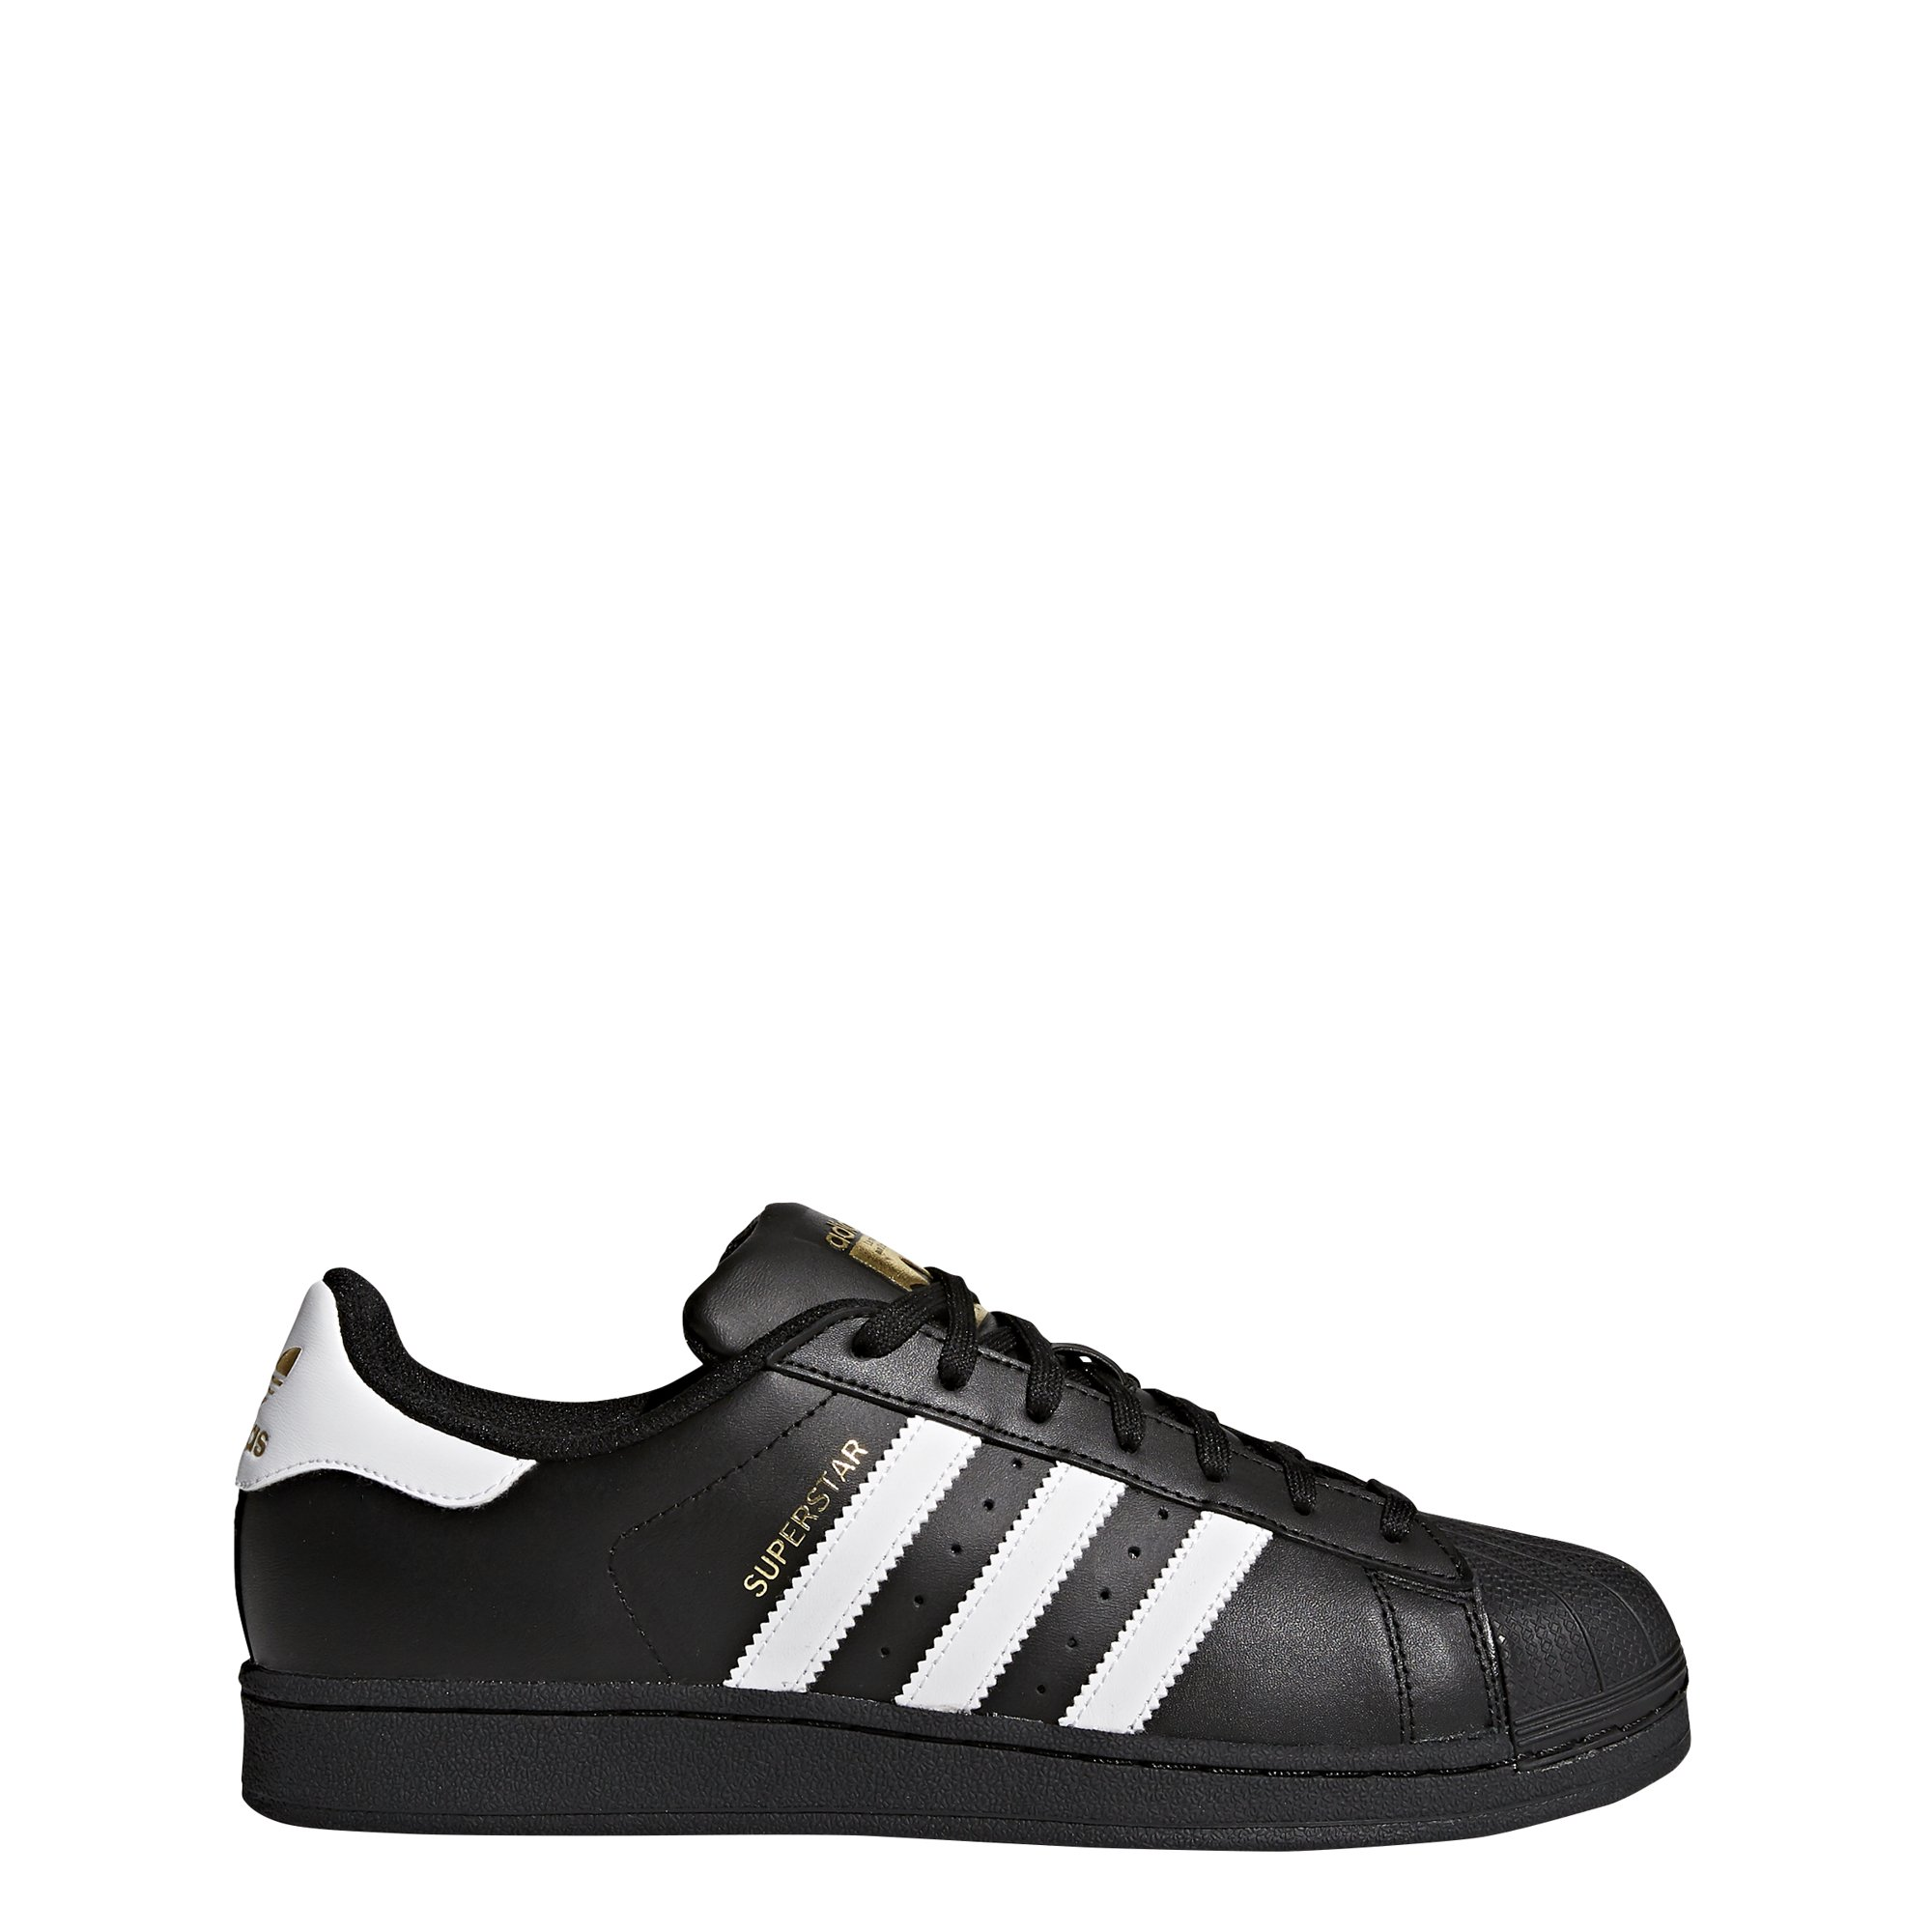 adidas Originals Men's Superstar Foundation Casual Sneaker, Black/White/Black, 11 D(M) US by adidas Originals